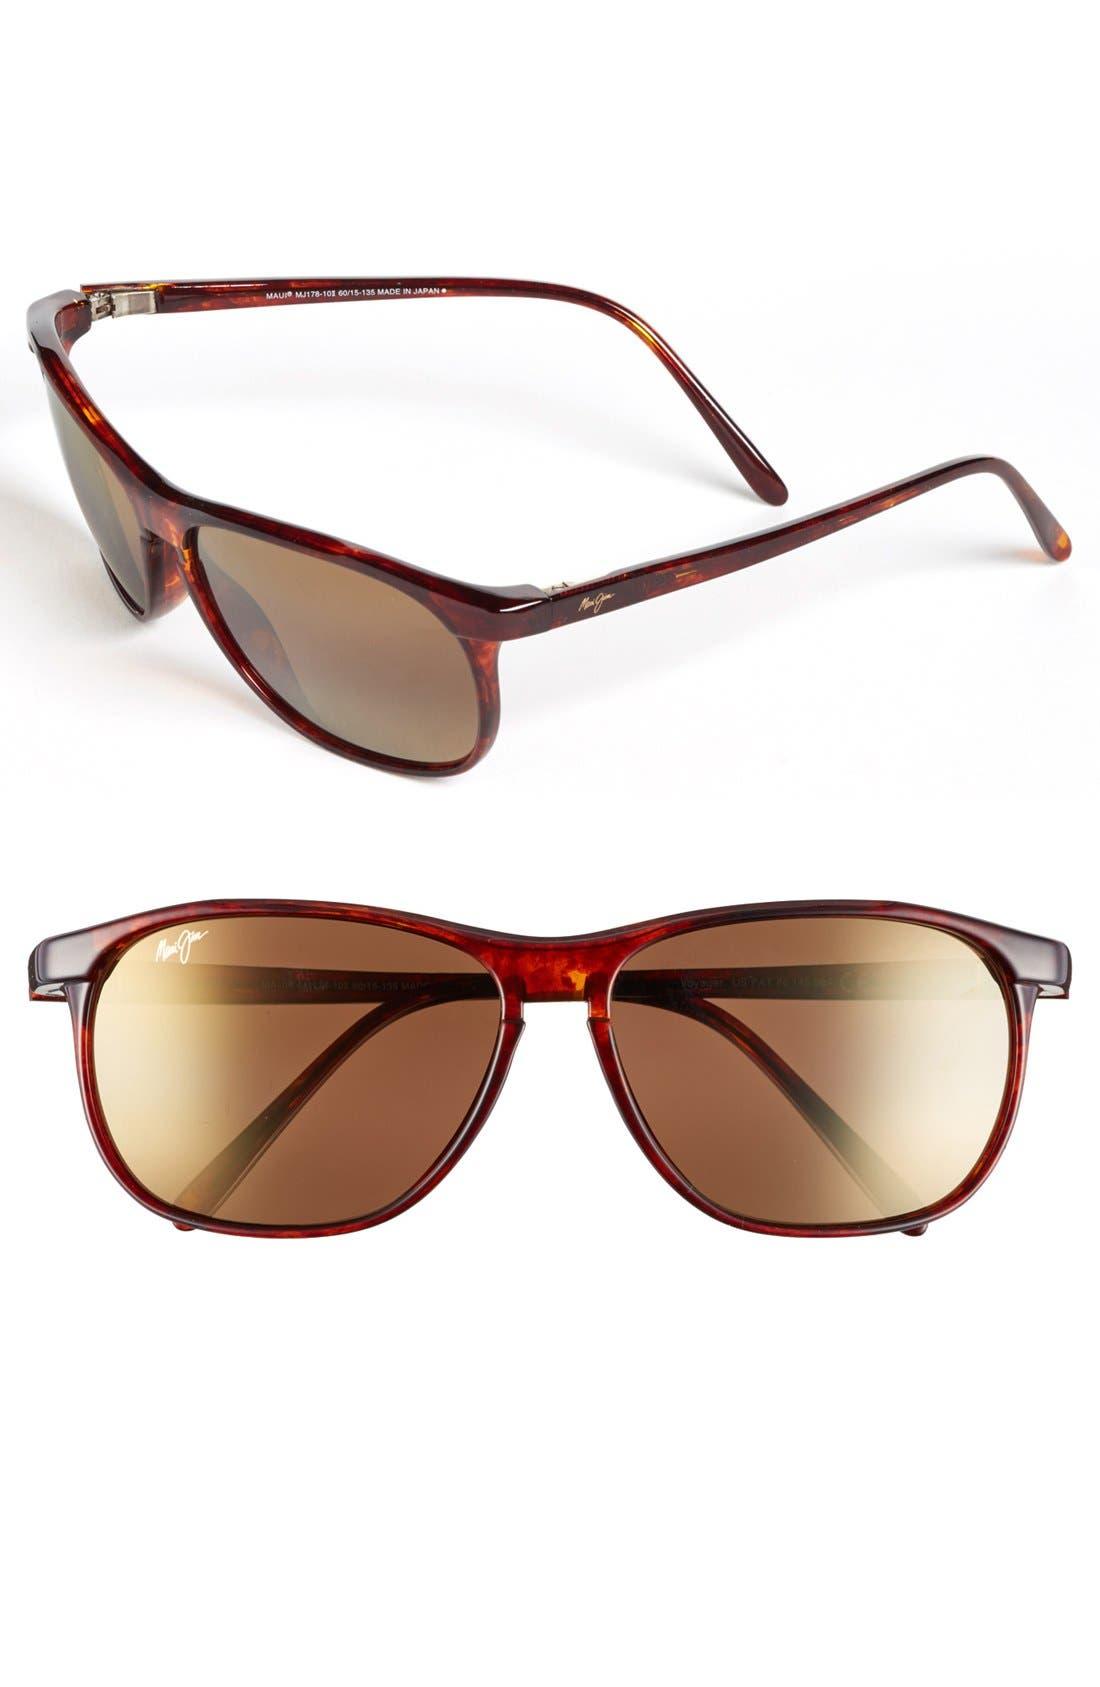 'Voyager - PolarizedPlus<sup>®</sup>2' 60mm Sunglasses,                             Main thumbnail 1, color,                             TORTOISE